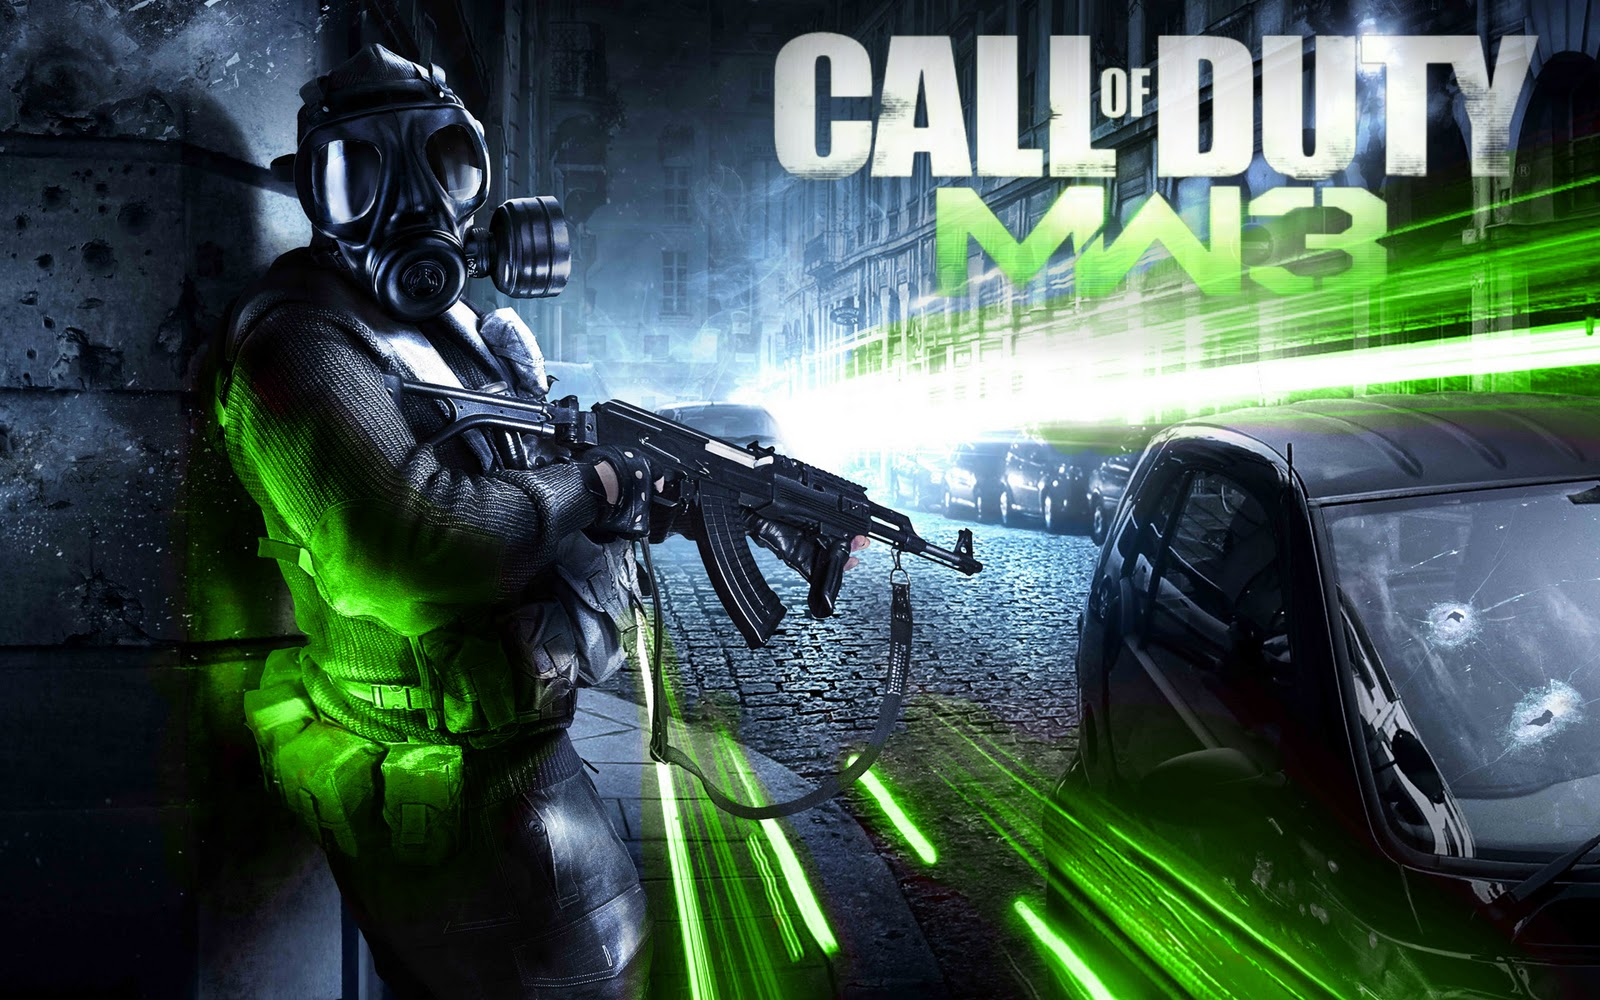 Call of Duty Modern Warfare 3 Wallpaper Télécharger - modern warfare 3 paris wallpapers